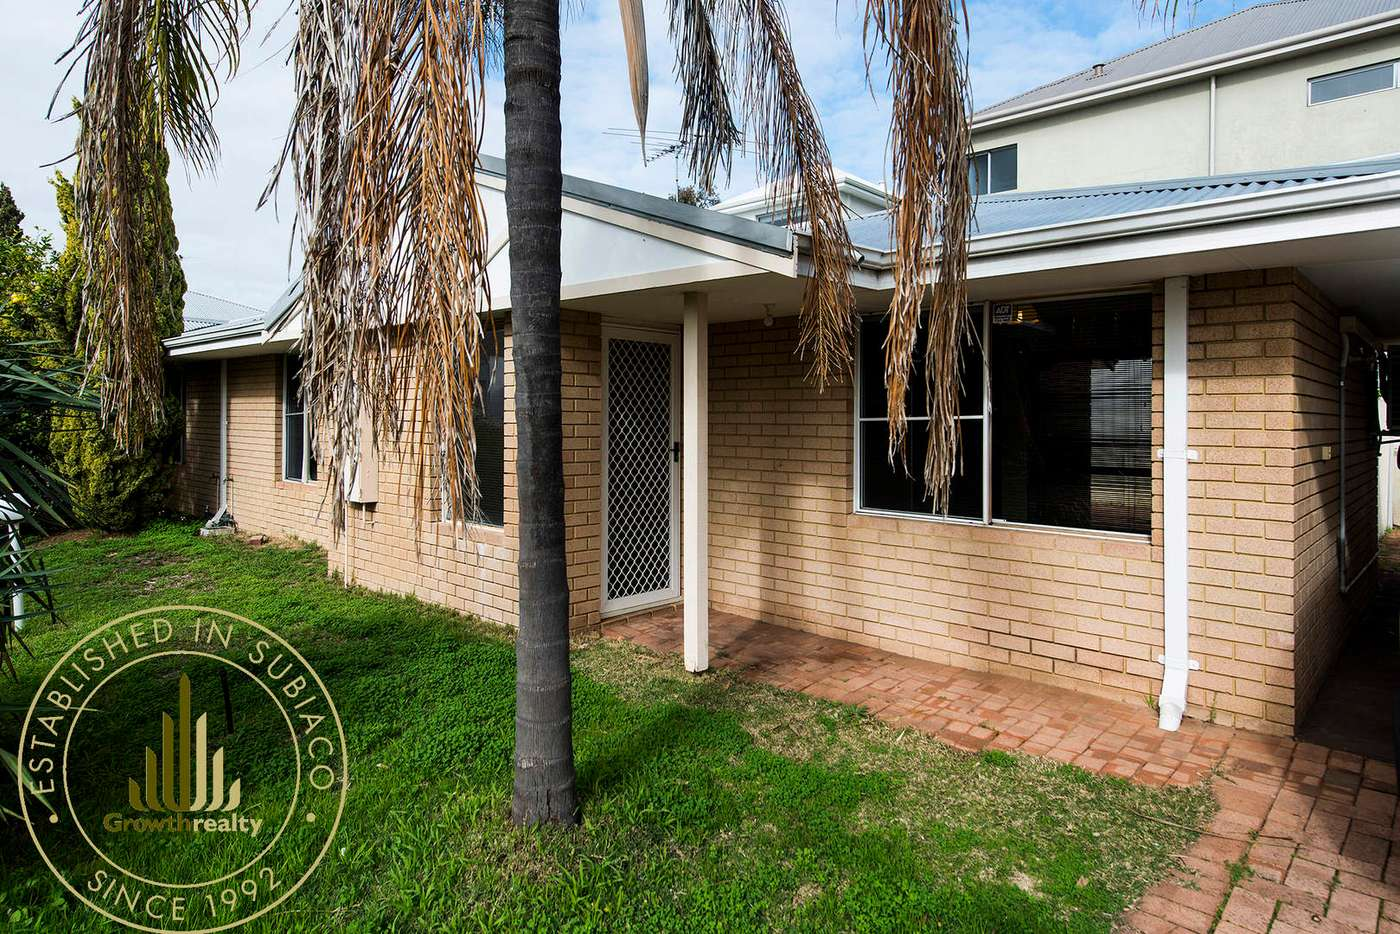 Main view of Homely villa listing, 6/119 Kimberley Street, West Leederville WA 6007